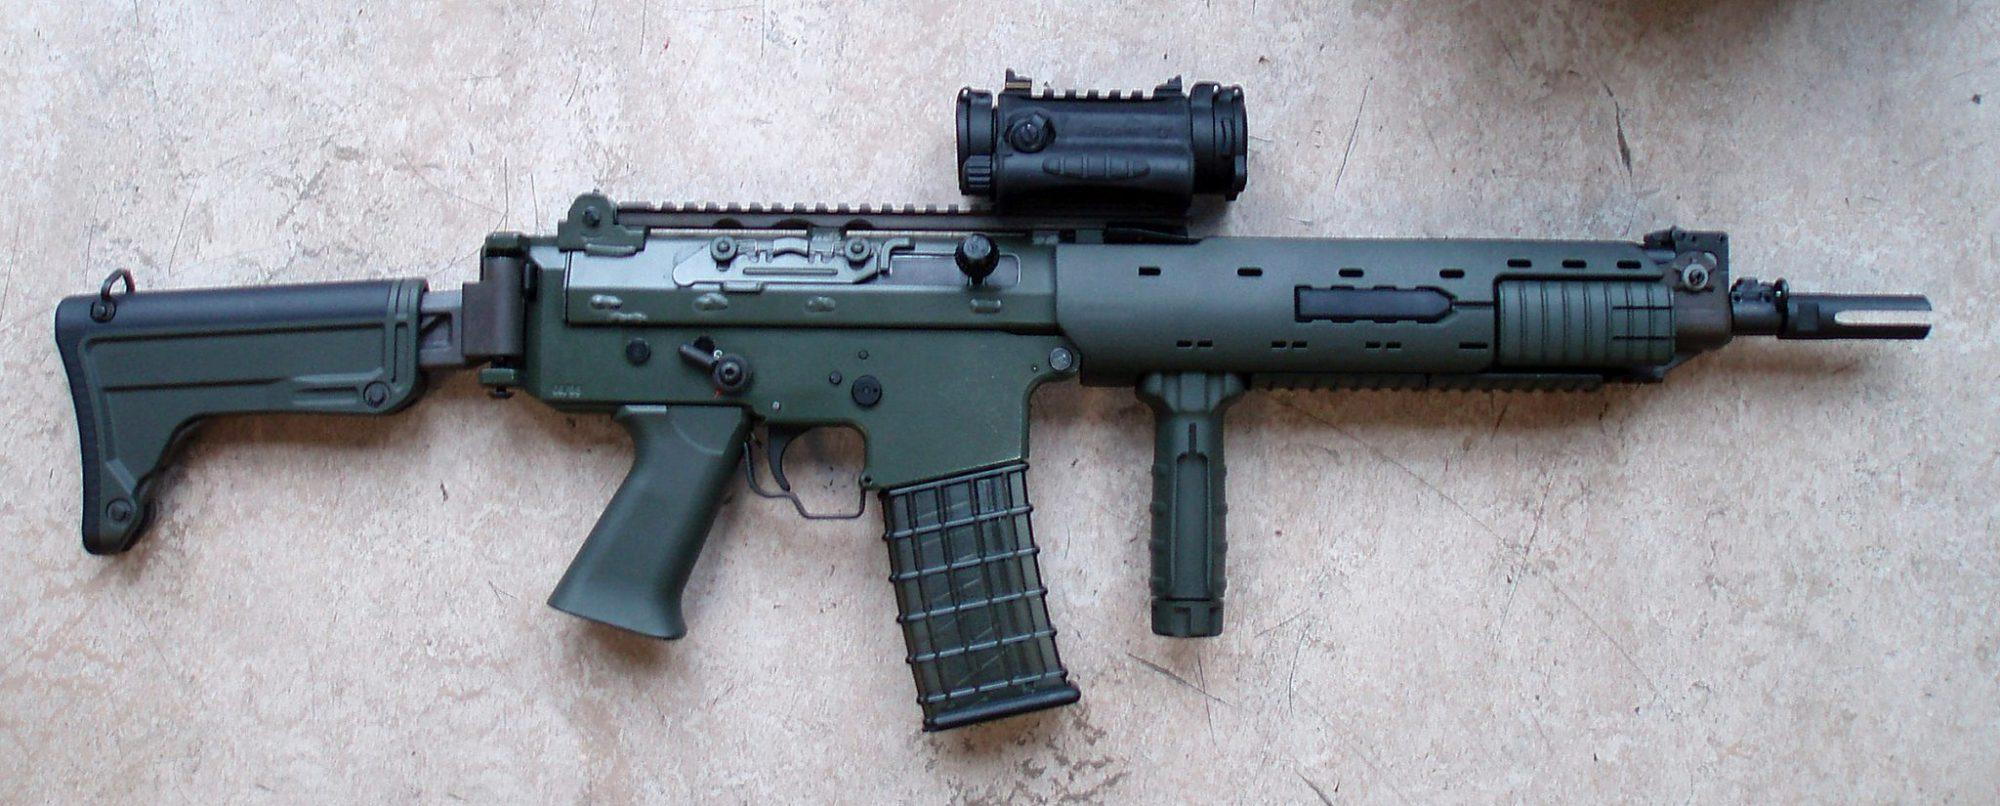 The final version of the Ak 5C with an Aimpoint red dot sight and forward vertical grip